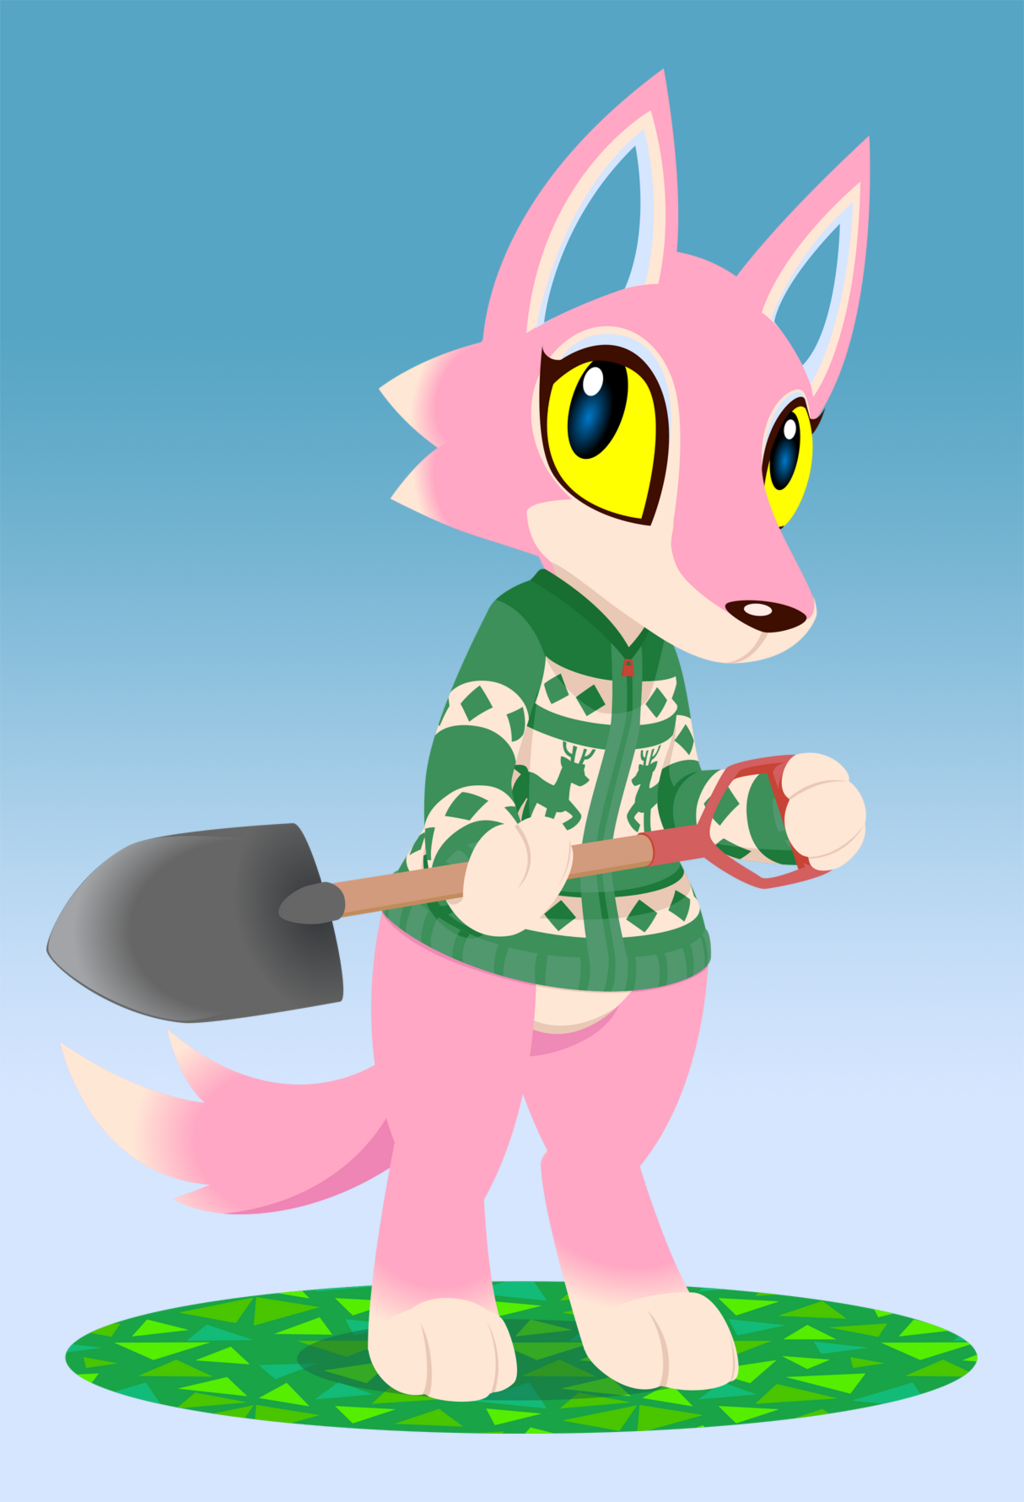 Most recent image: Freya with Shovel